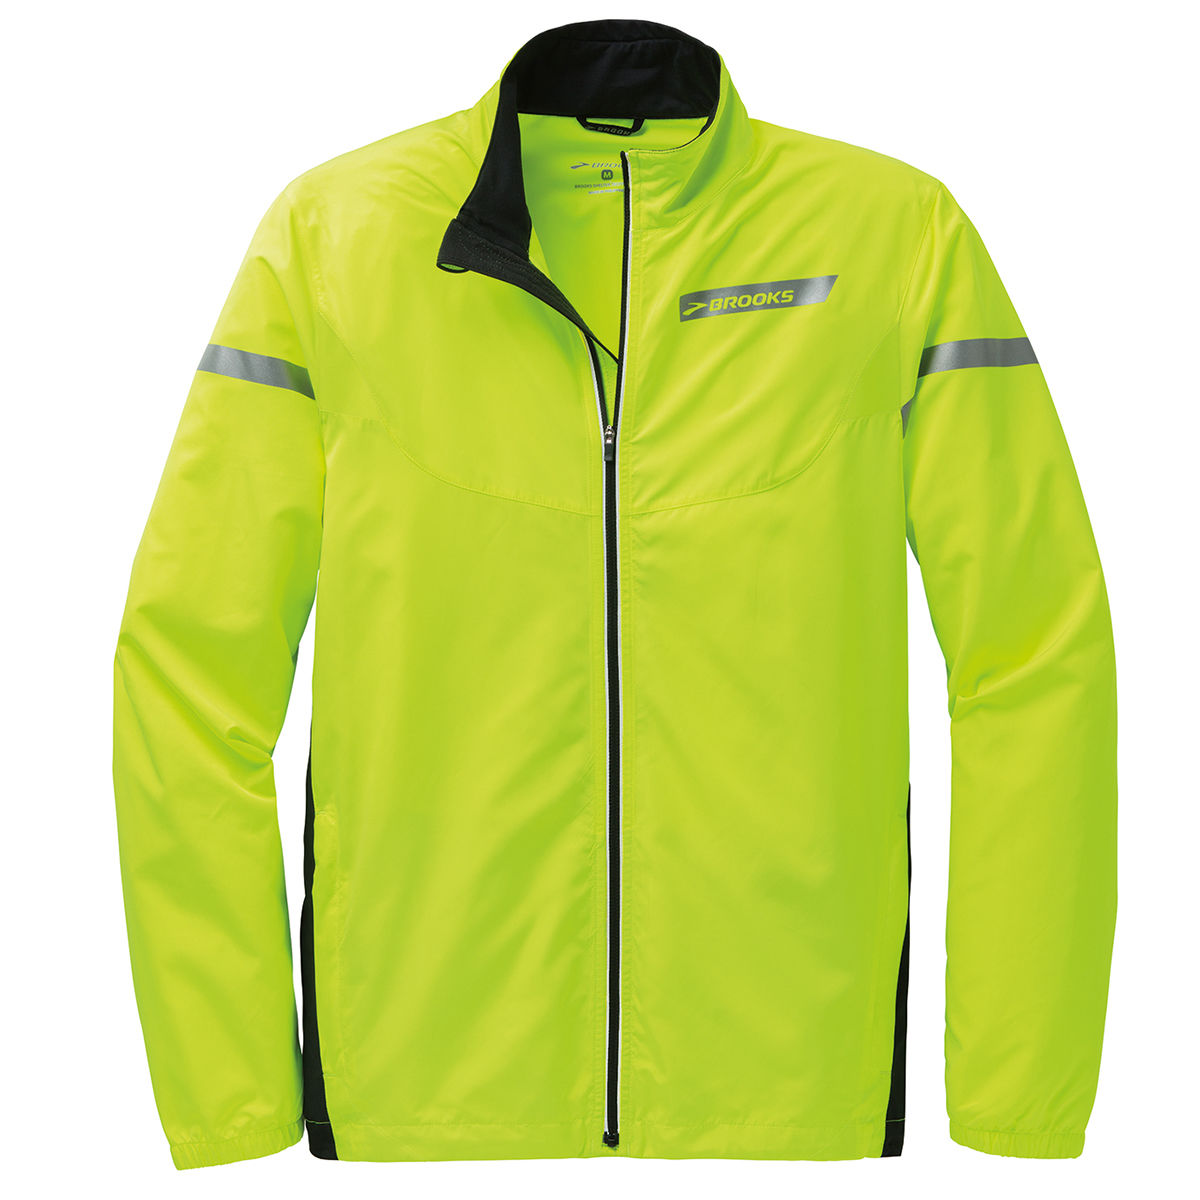 photo of a Brooks outdoor clothing product